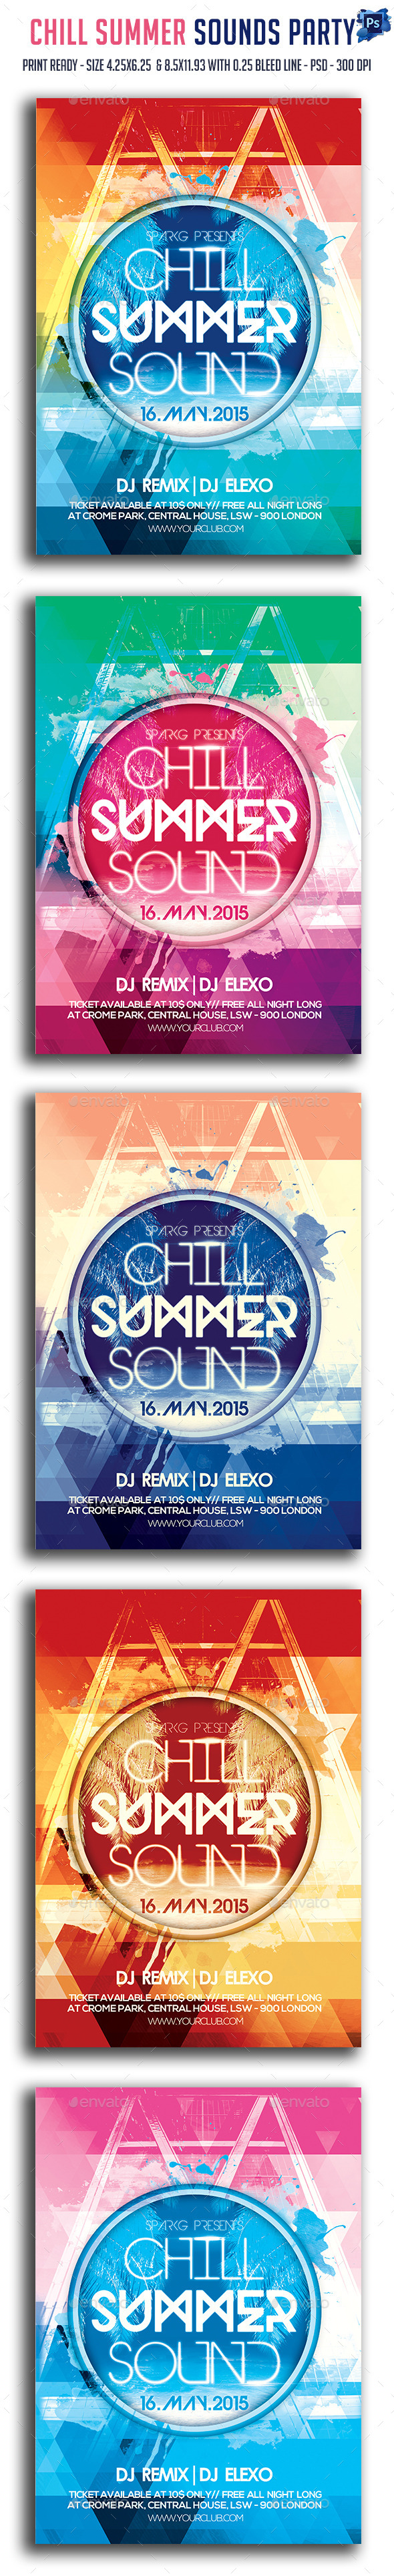 Chill Summer Sounds Party Flyer - Clubs & Parties Events